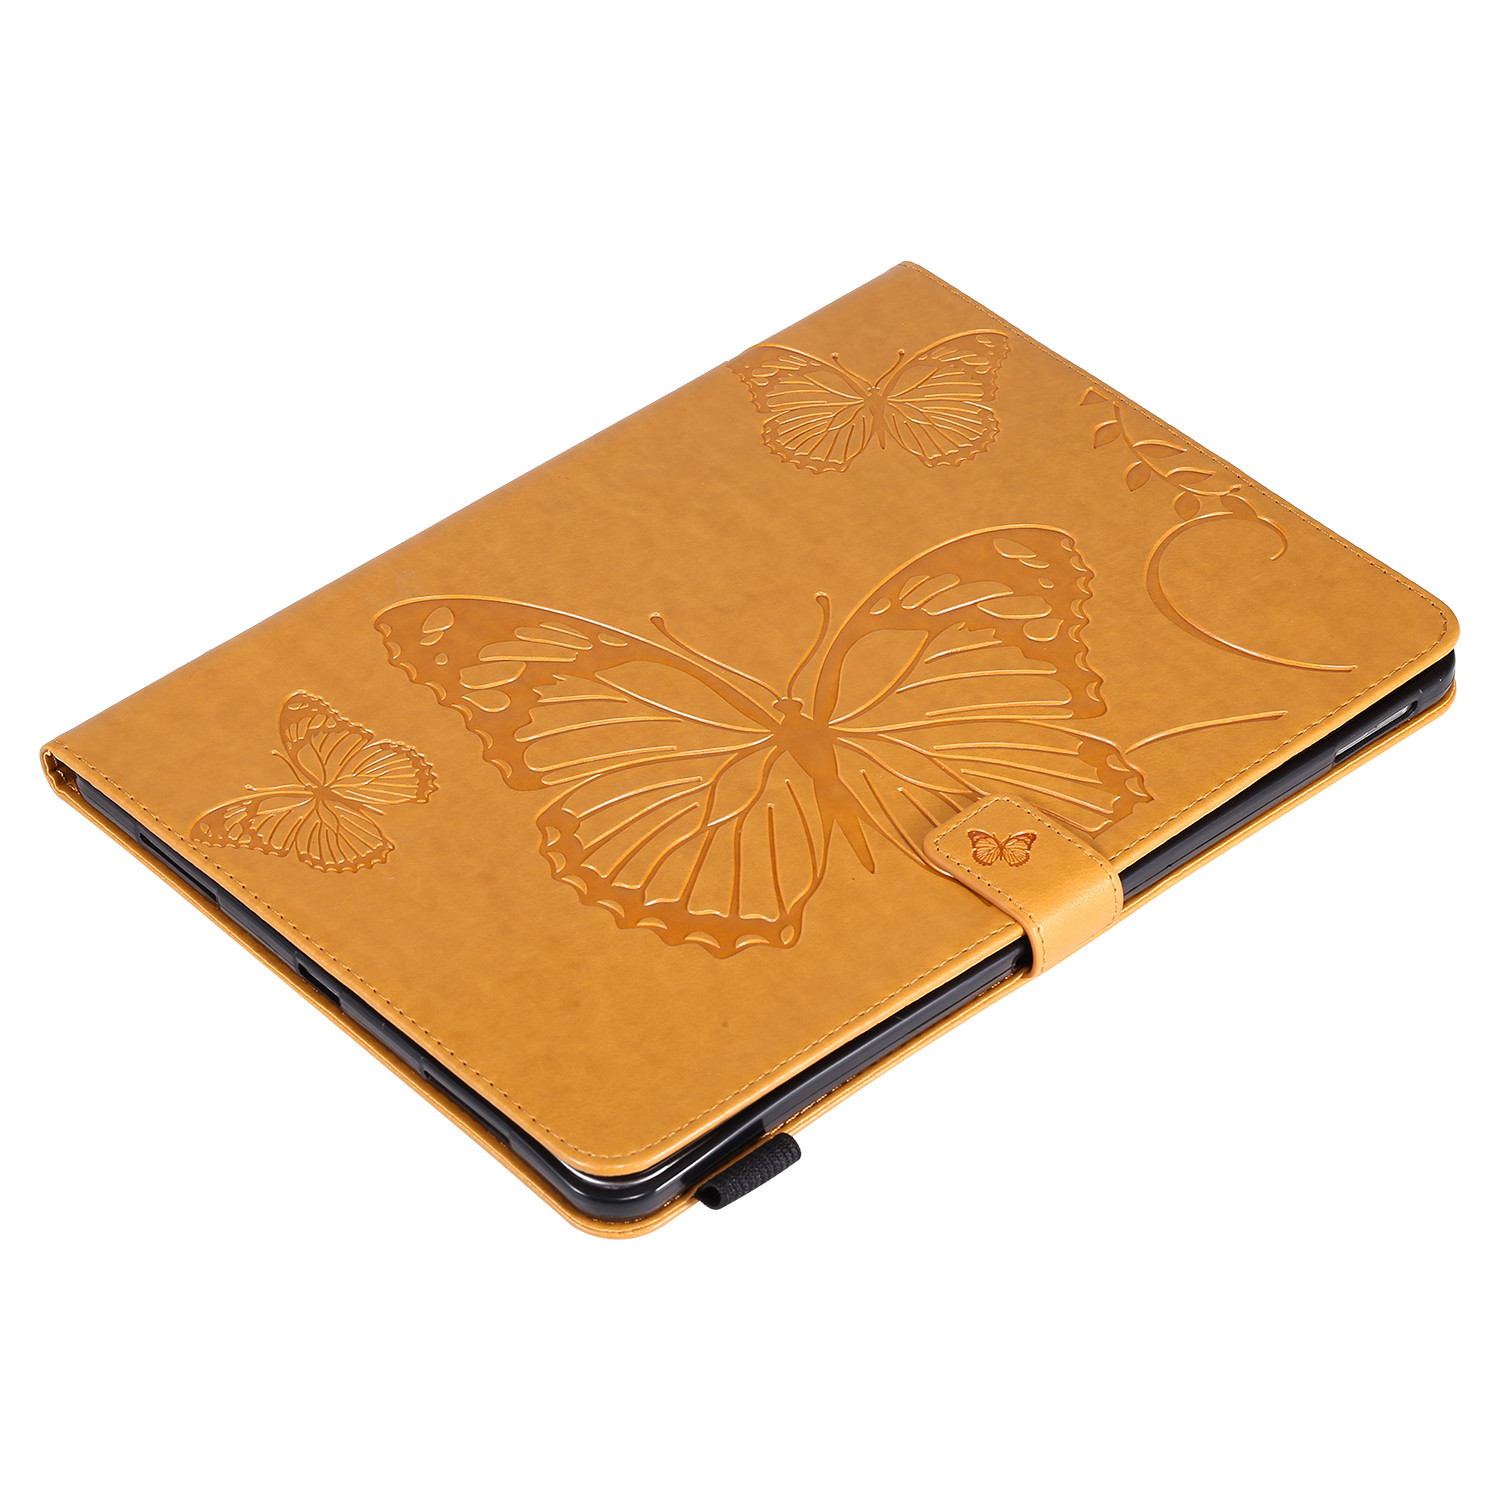 4 Black Butterfly Tablet Fundas For iPad Pro 12 9 Case 2020 2018 Folding Folio Embossed Cover For